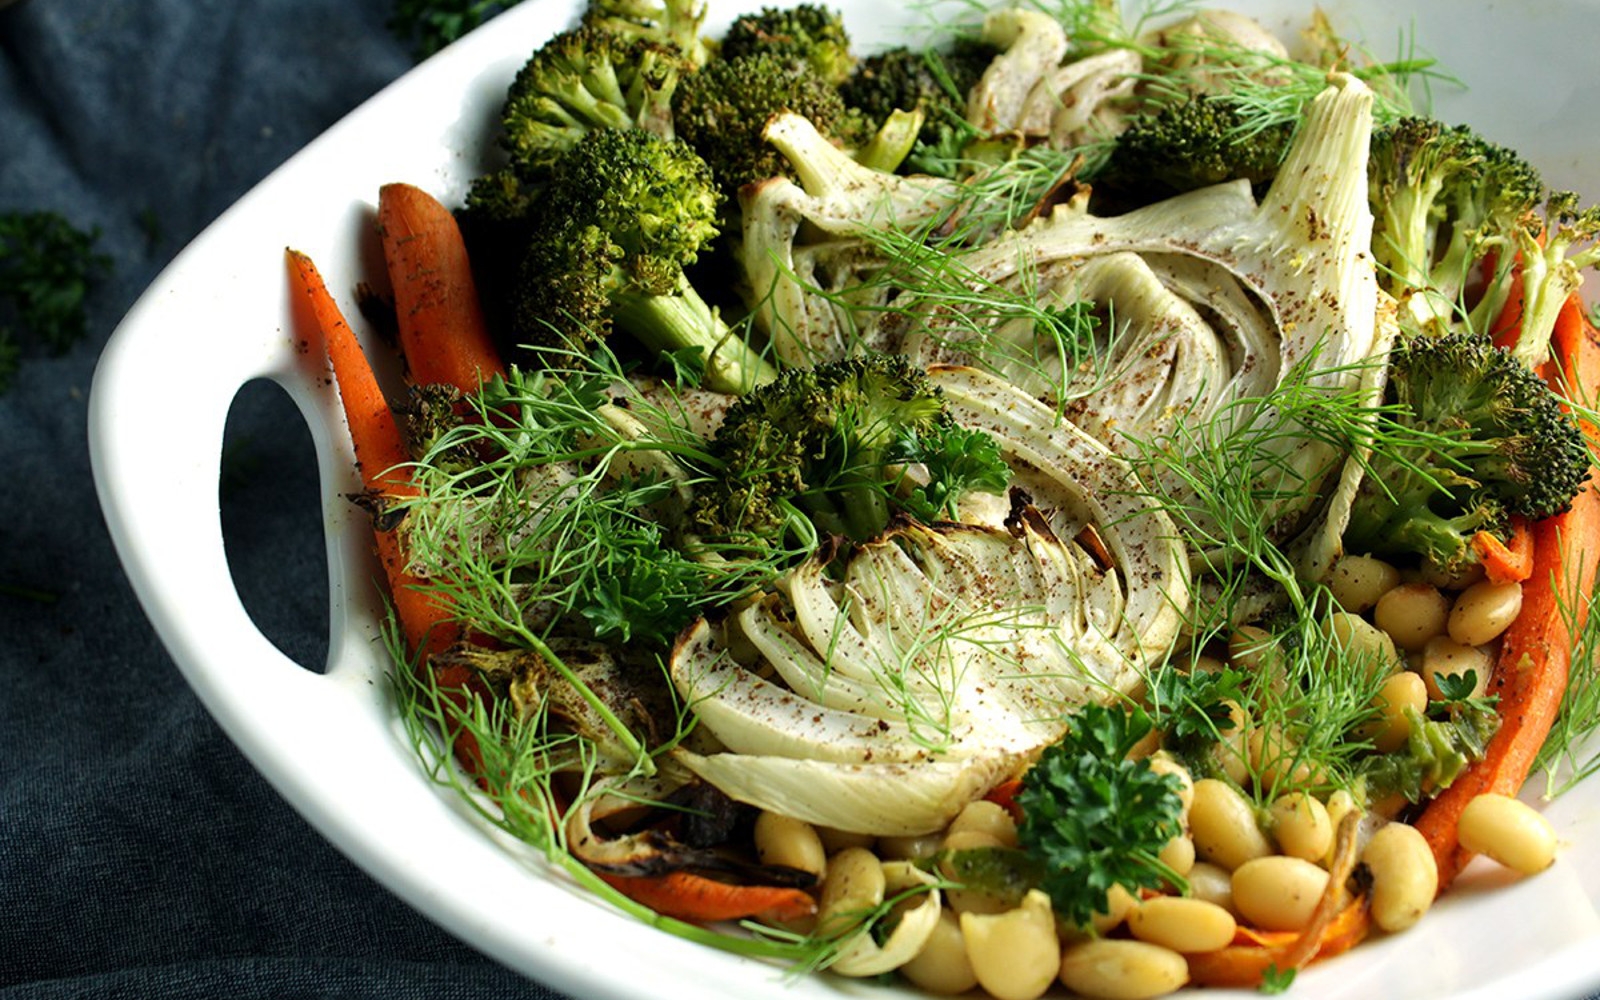 Vegan Fennel Bowl With Creamy White Beans and Dry Roasted Vegetables